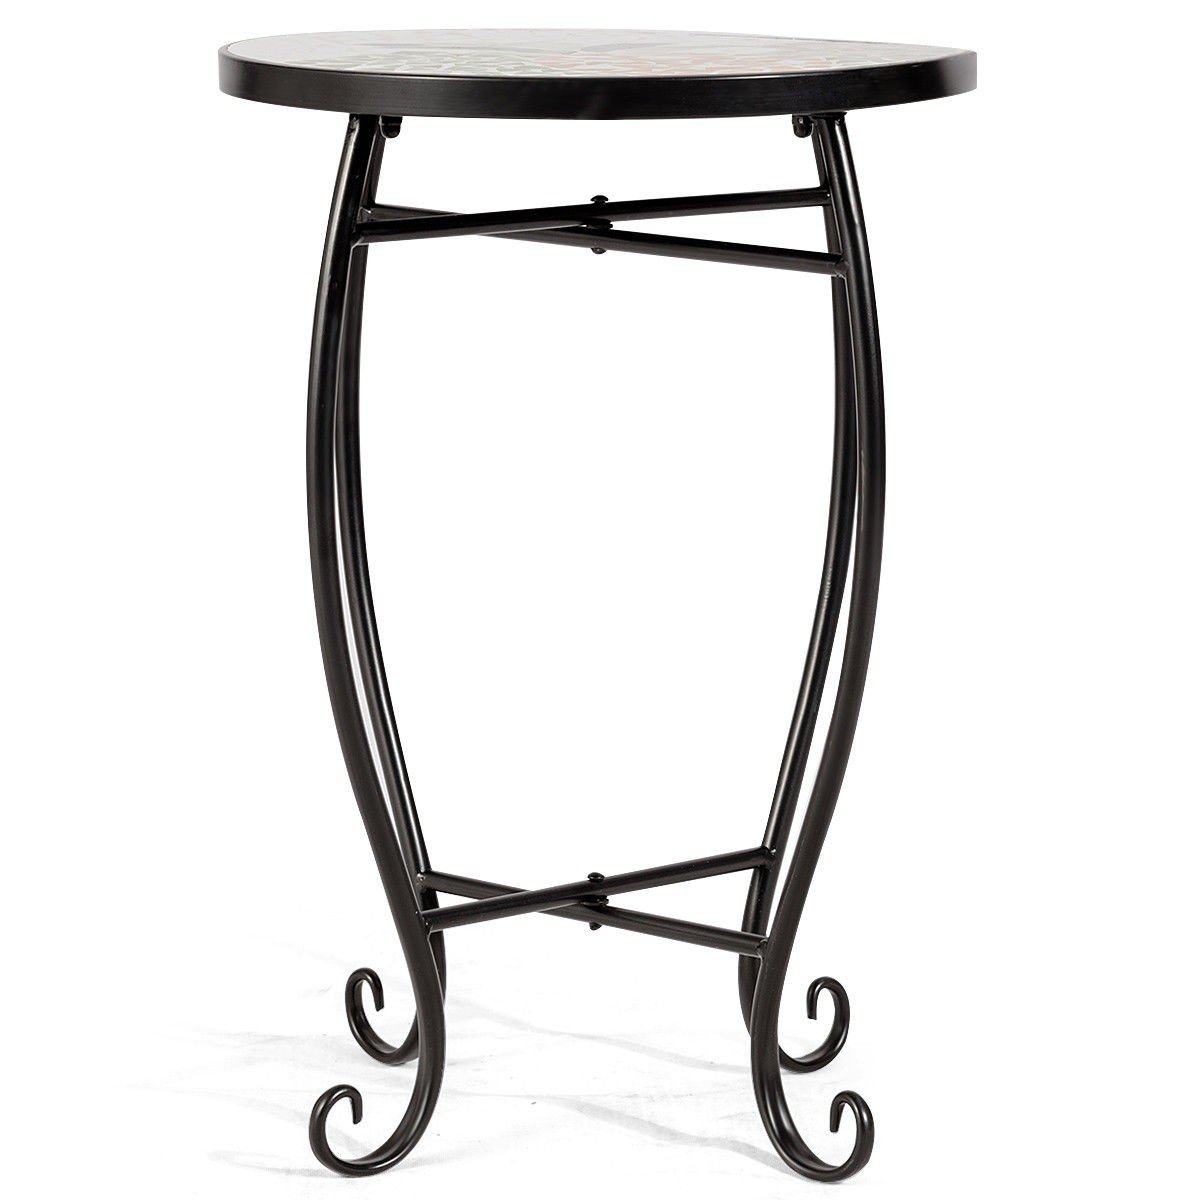 custpromo mosaic accent table metal round side plant stand with cobalt glass top indoor outdoor coastal bedroom ideas alexa home automation dale tiffany stained lamp shade ikea